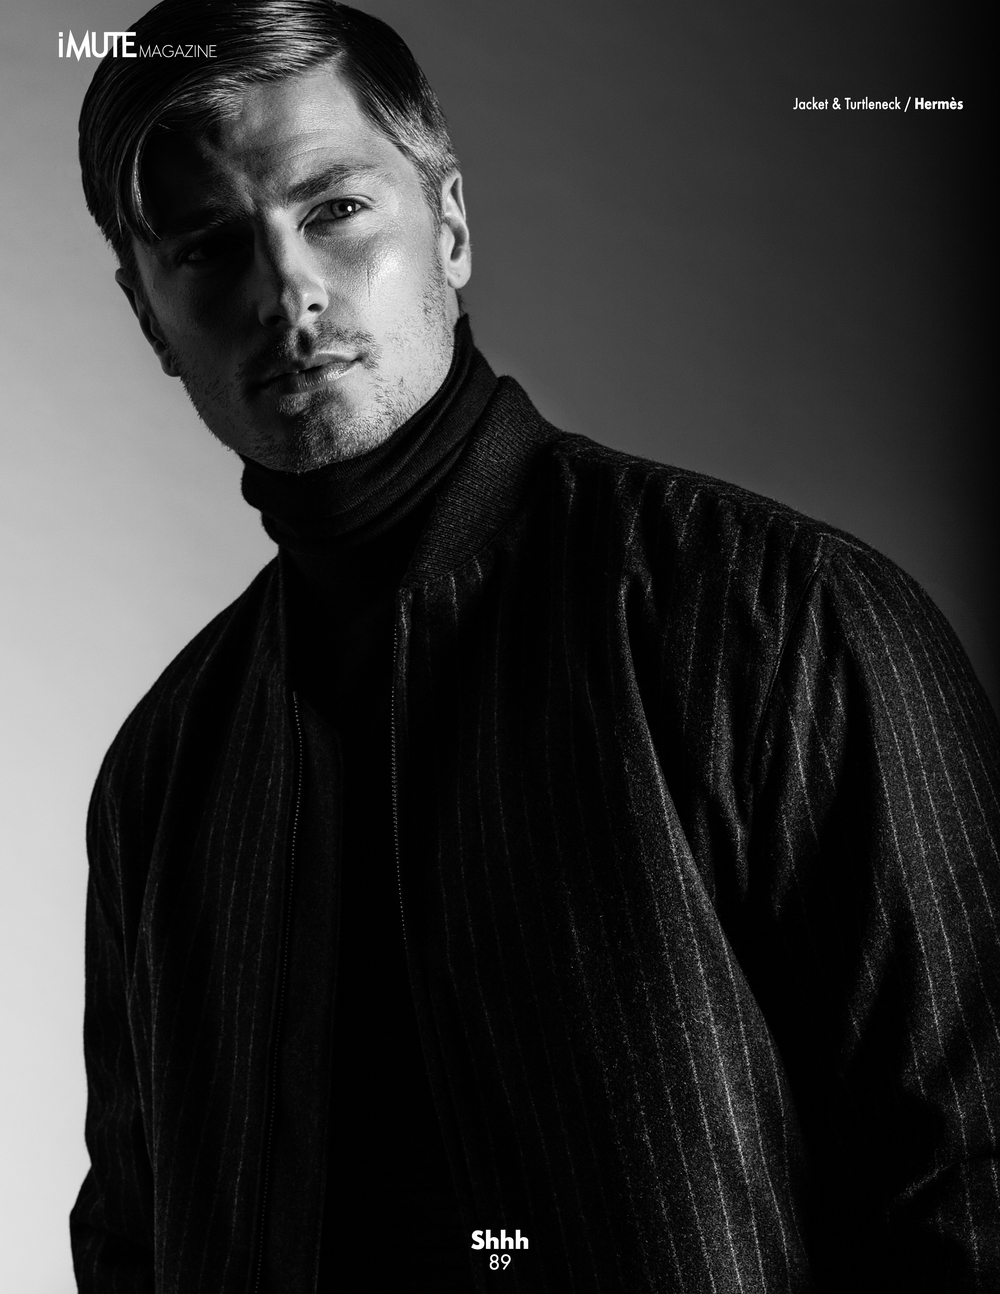 Mark Binks is a fashion and portrait photographer based in Toronto. Image appeared on http://imutemagazine.com/ men's editorial photography black and white